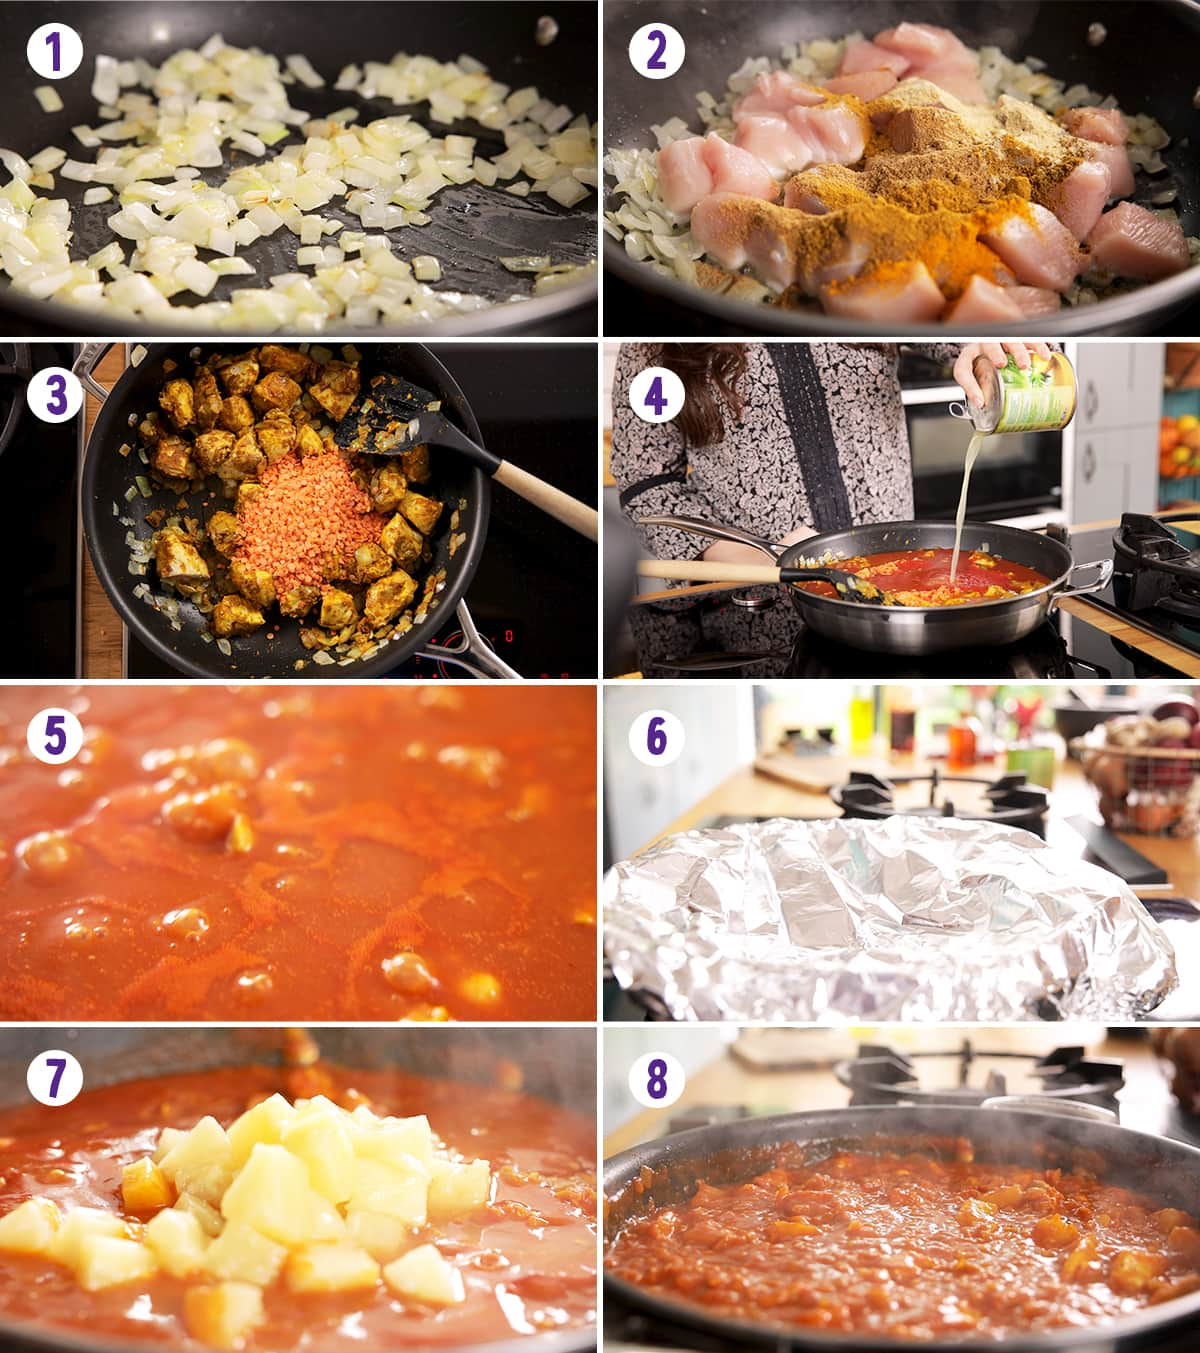 8 image collage showing how to make chicken dhansak